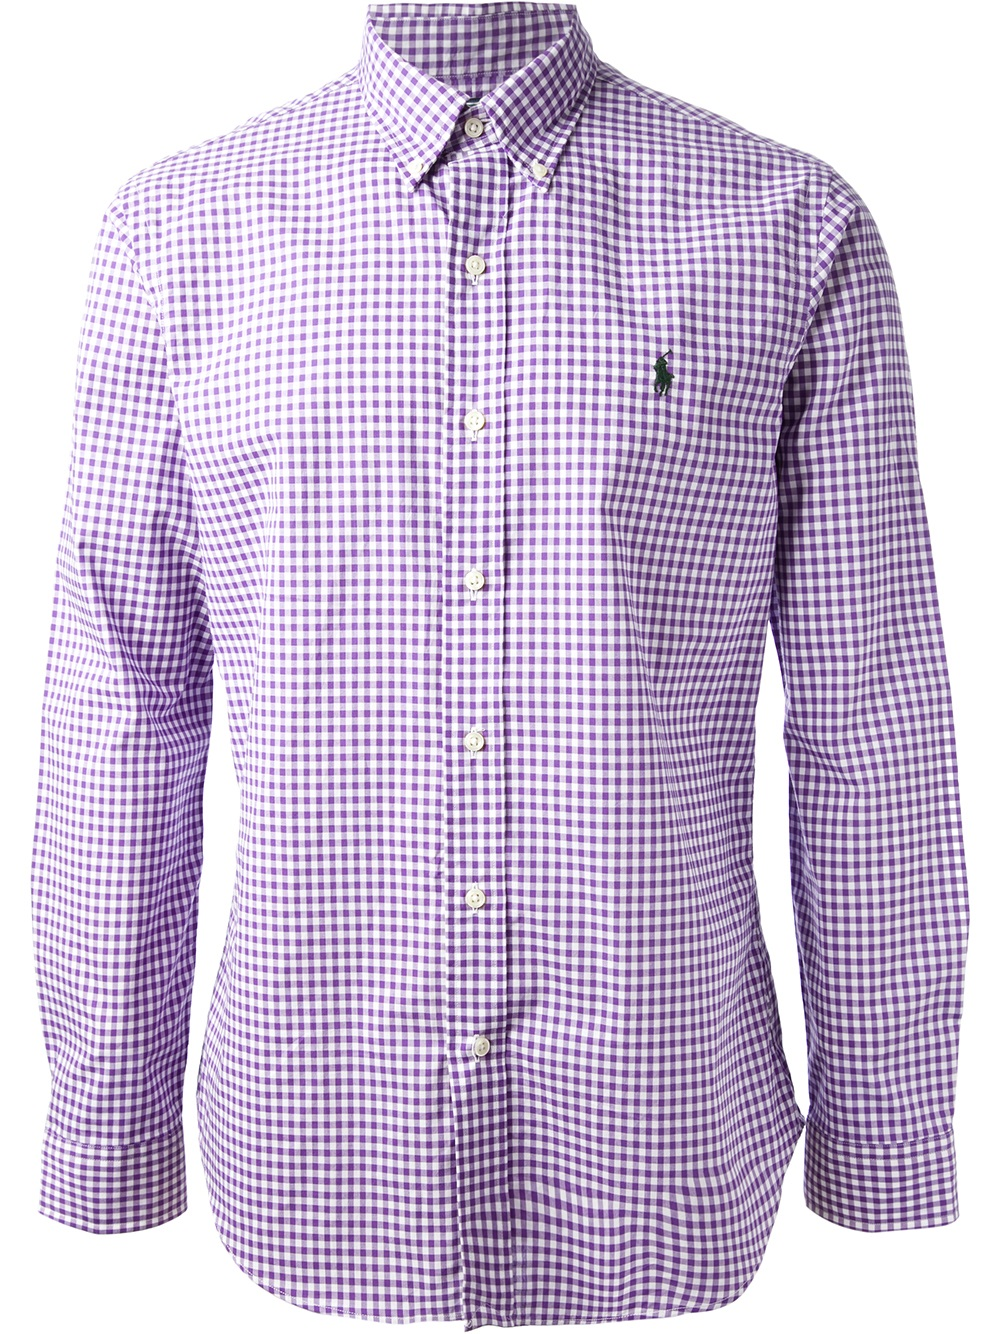 Shop the Latest Collection of Purple Casual Shirts for Men Online at exploreblogirvd.gq FREE SHIPPING AVAILABLE! Macy's Presents: The Edit - A curated mix of fashion and inspiration Check It Out Free Shipping with $49 purchase + Free Store Pickup.